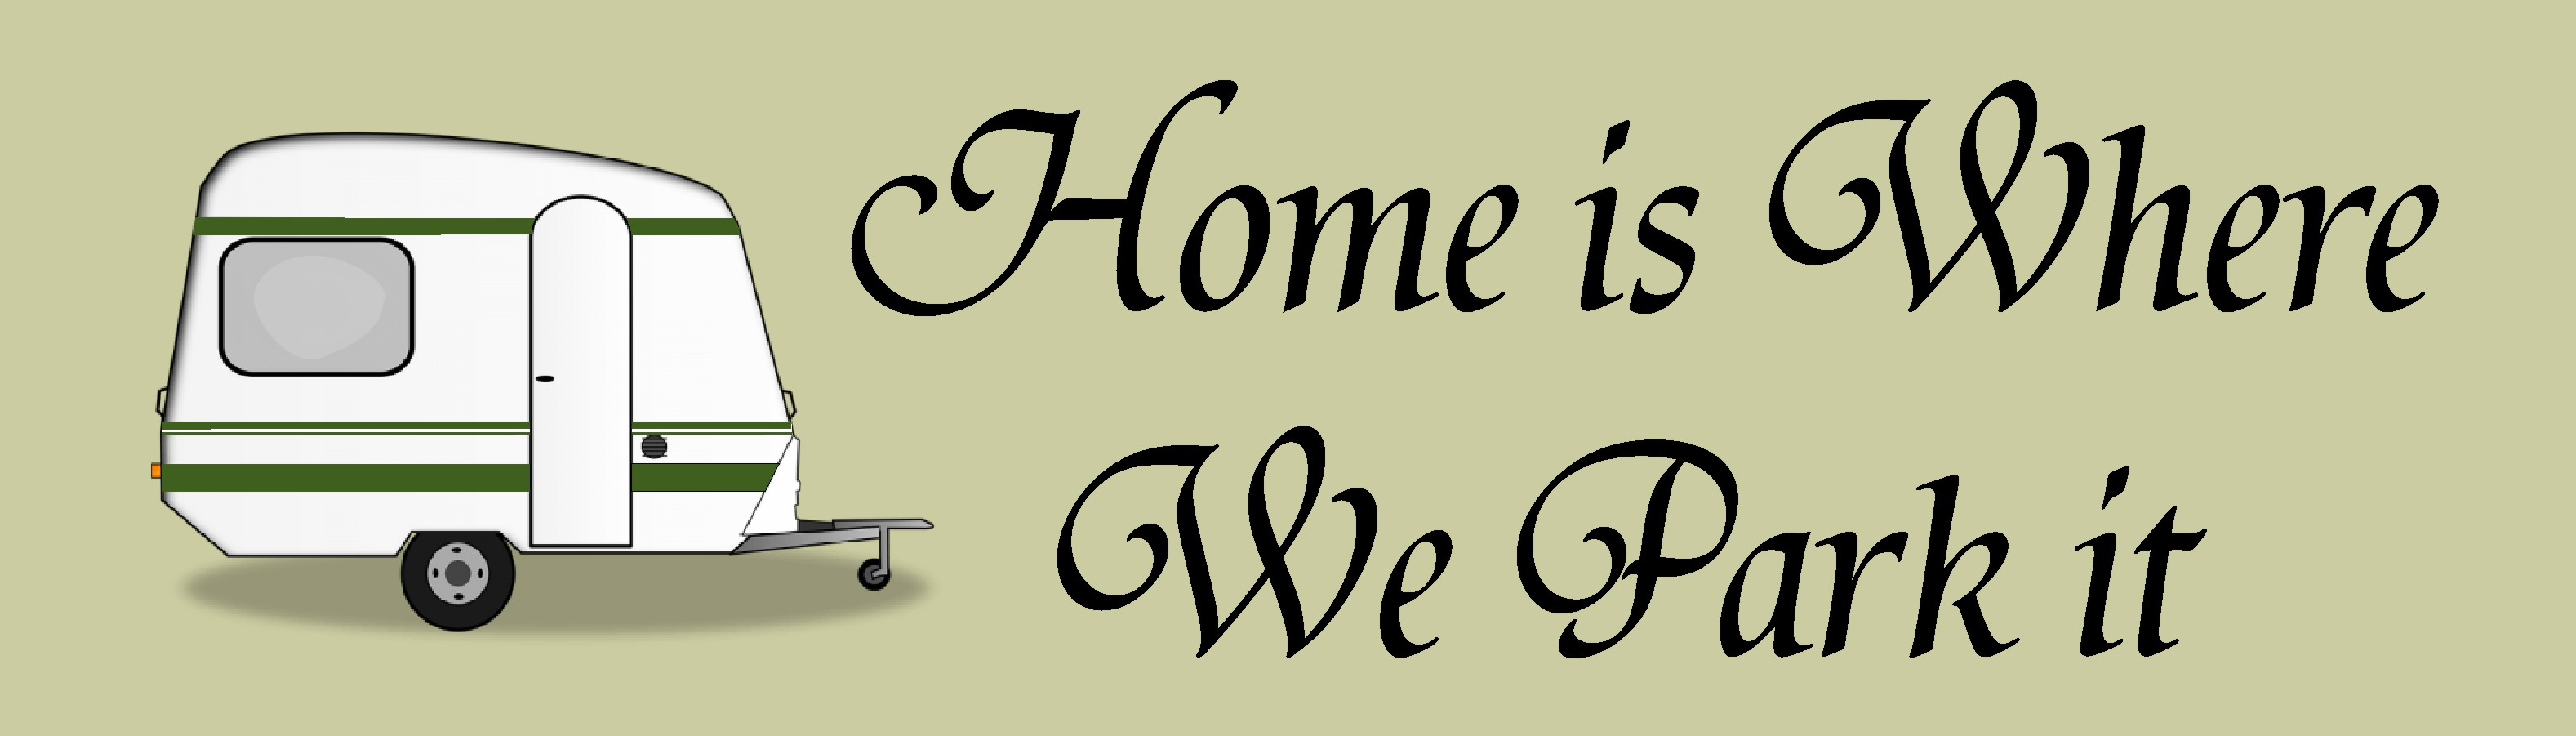 "HOME IS WHERE WE PARK IT 10.5"" X 3"" WOODEN BLOCK SIGN"